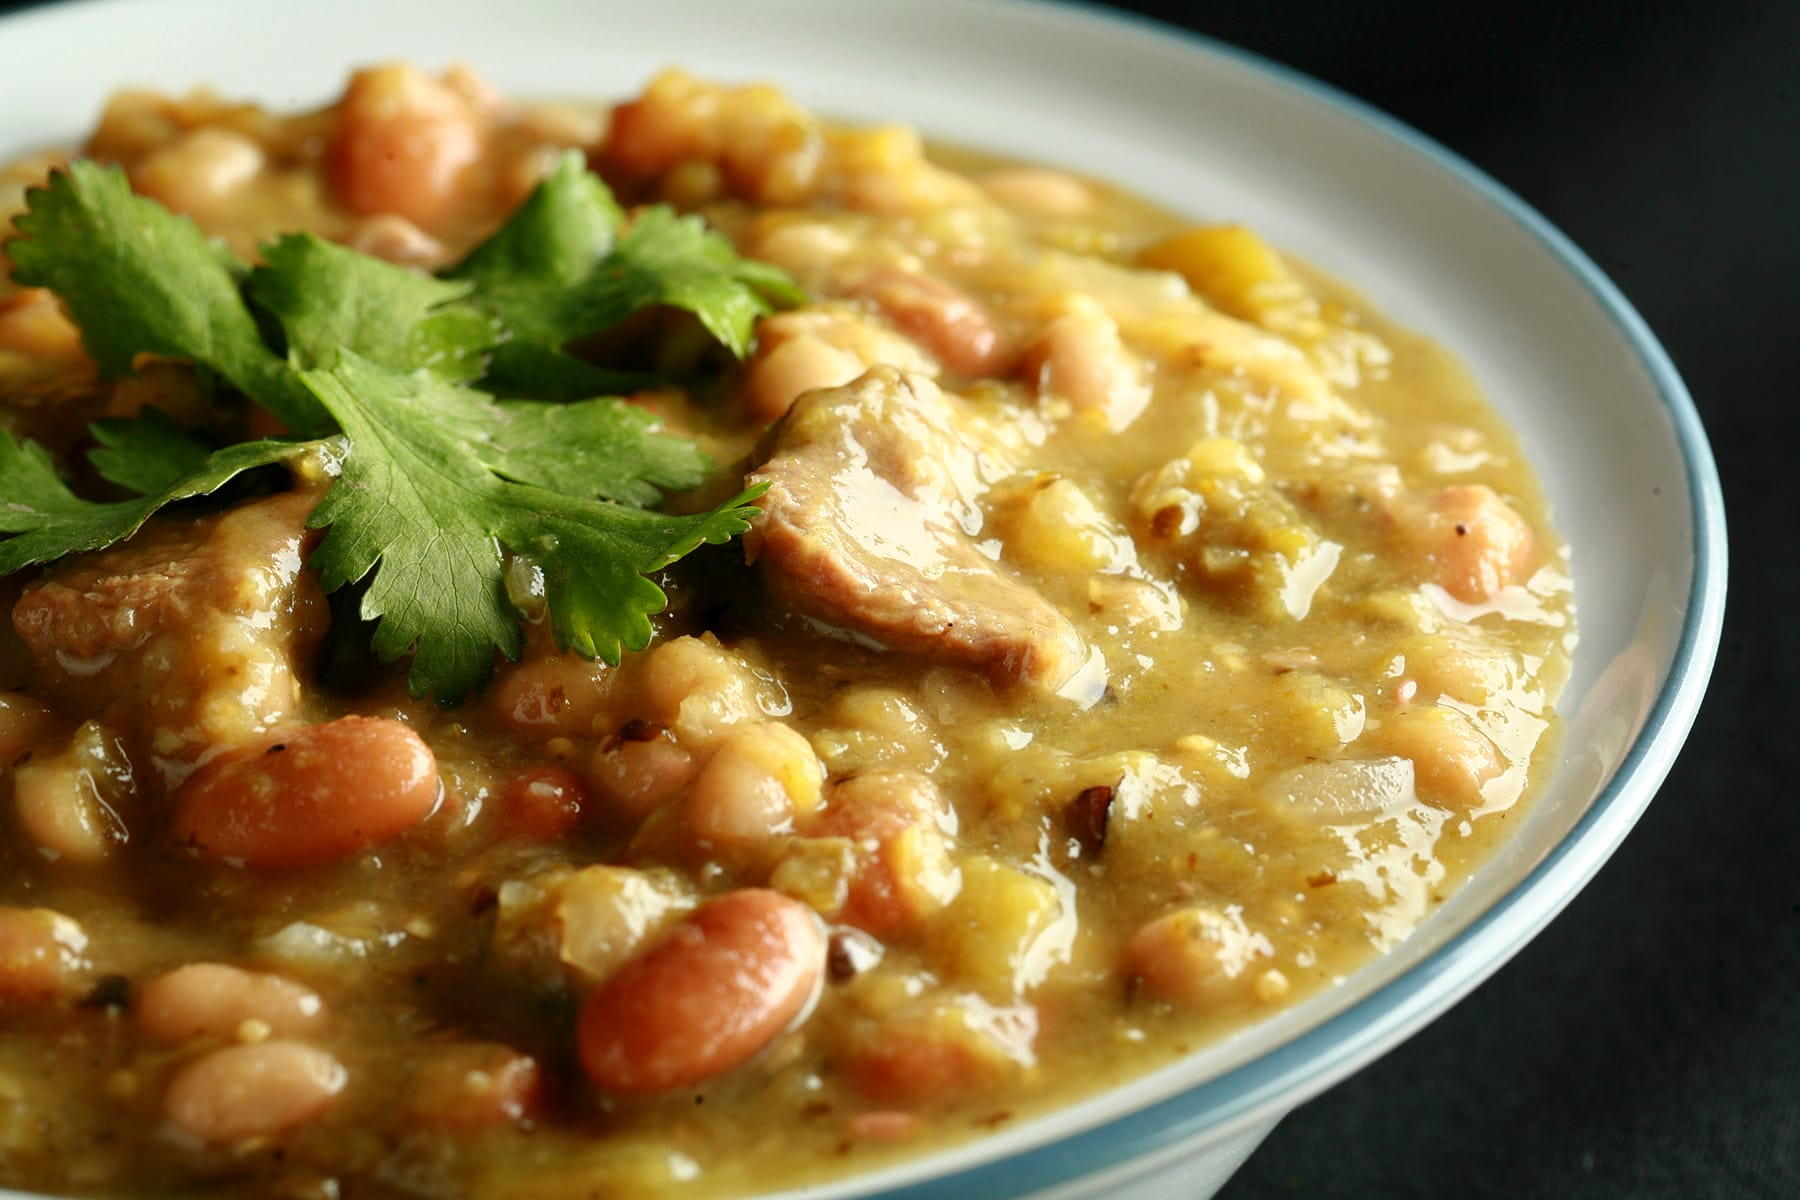 A close  up view of a bowl of roasted green chili.